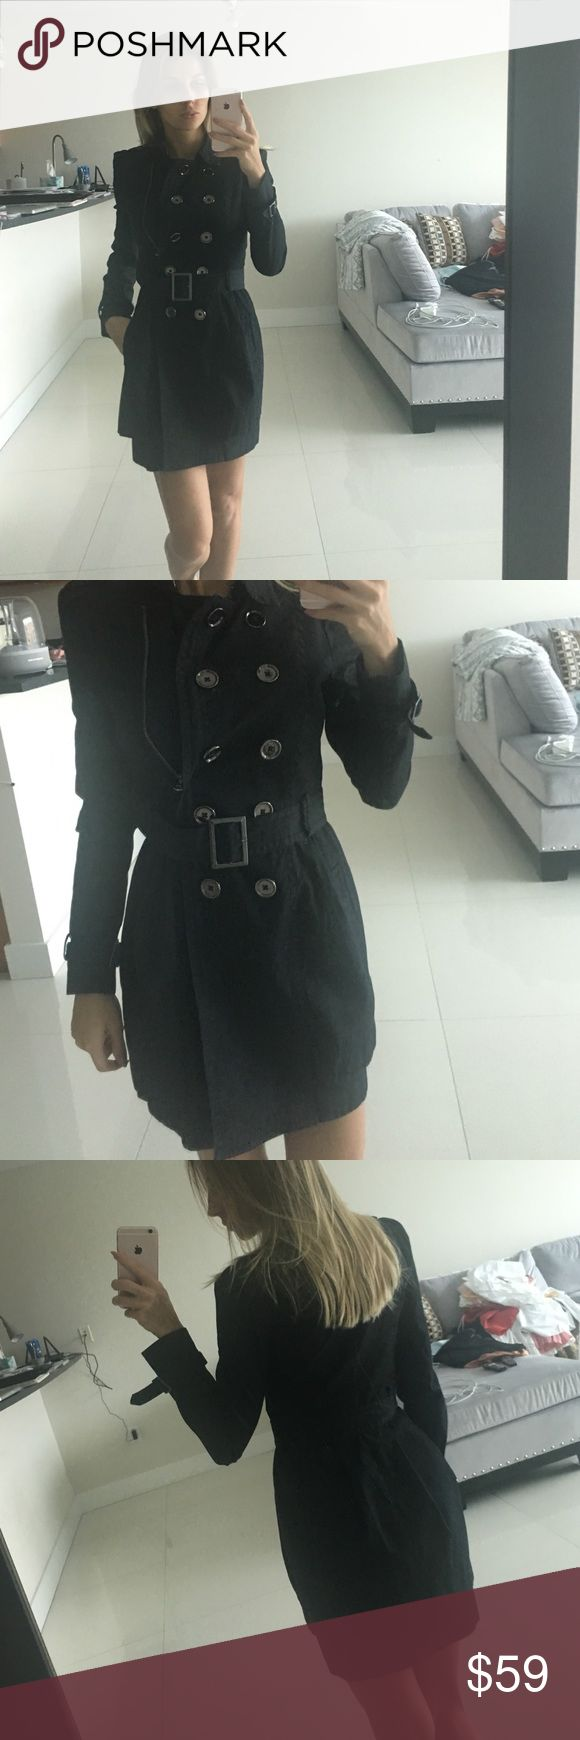 Armani Exchange coat S Used but very good cond!Armani Exchange coat S! A/X Armani Exchange Jackets & Coats Trench Coats